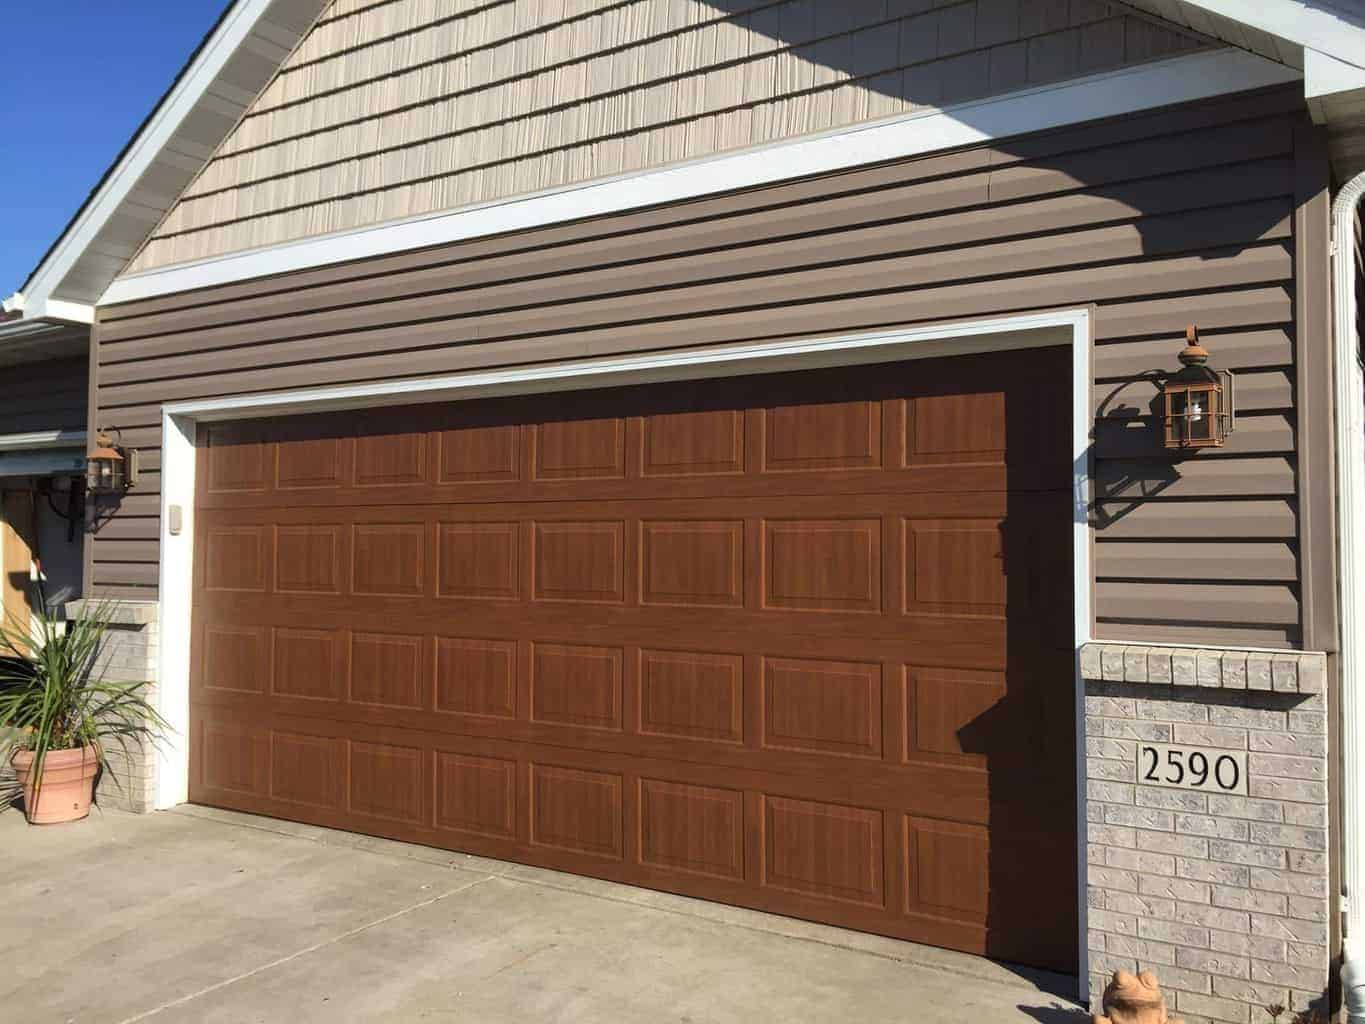 Overhead Doors For Business Garage Doors For Home